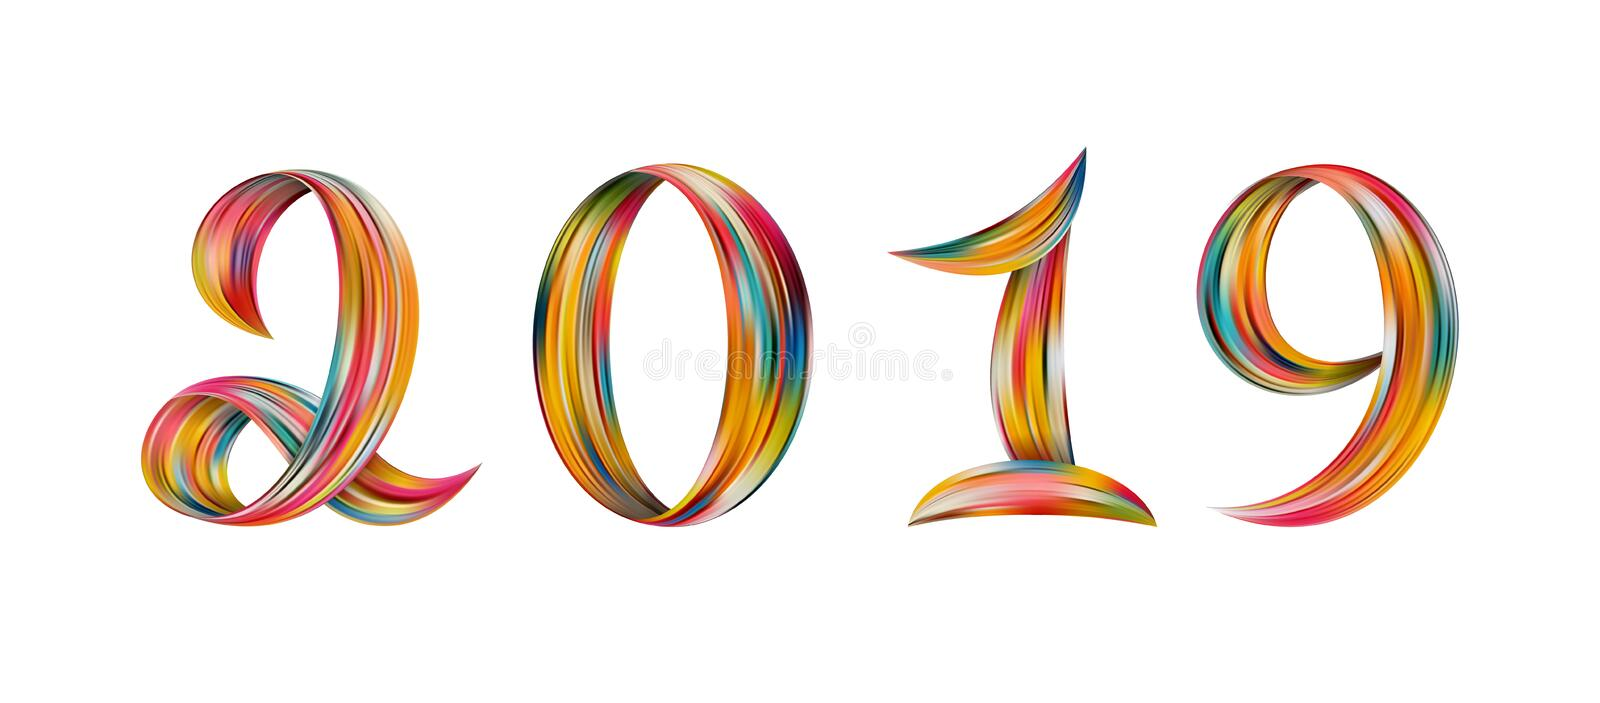 New Year 2019 color flow numbers white background. New Year 2019 color flow numbers for greeting card. Colorful vright symbols on white background. Vector vector illustration